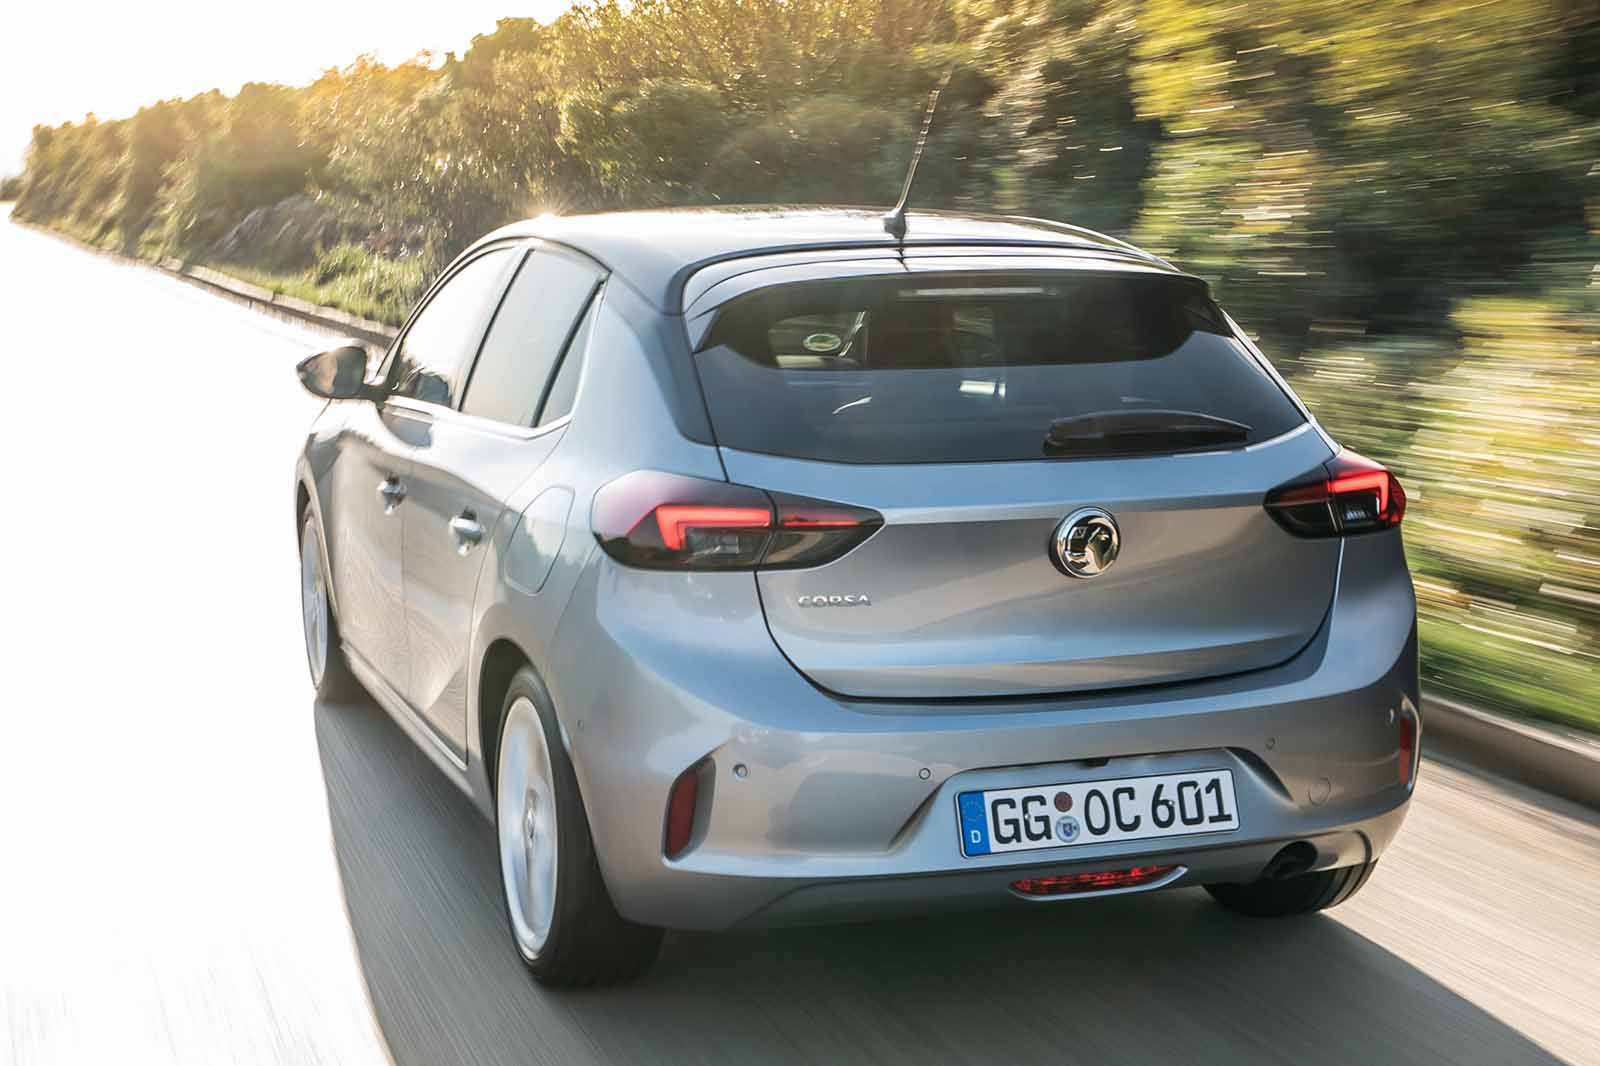 Vauxhall Corsa 2019 LHD rear tight tracking view